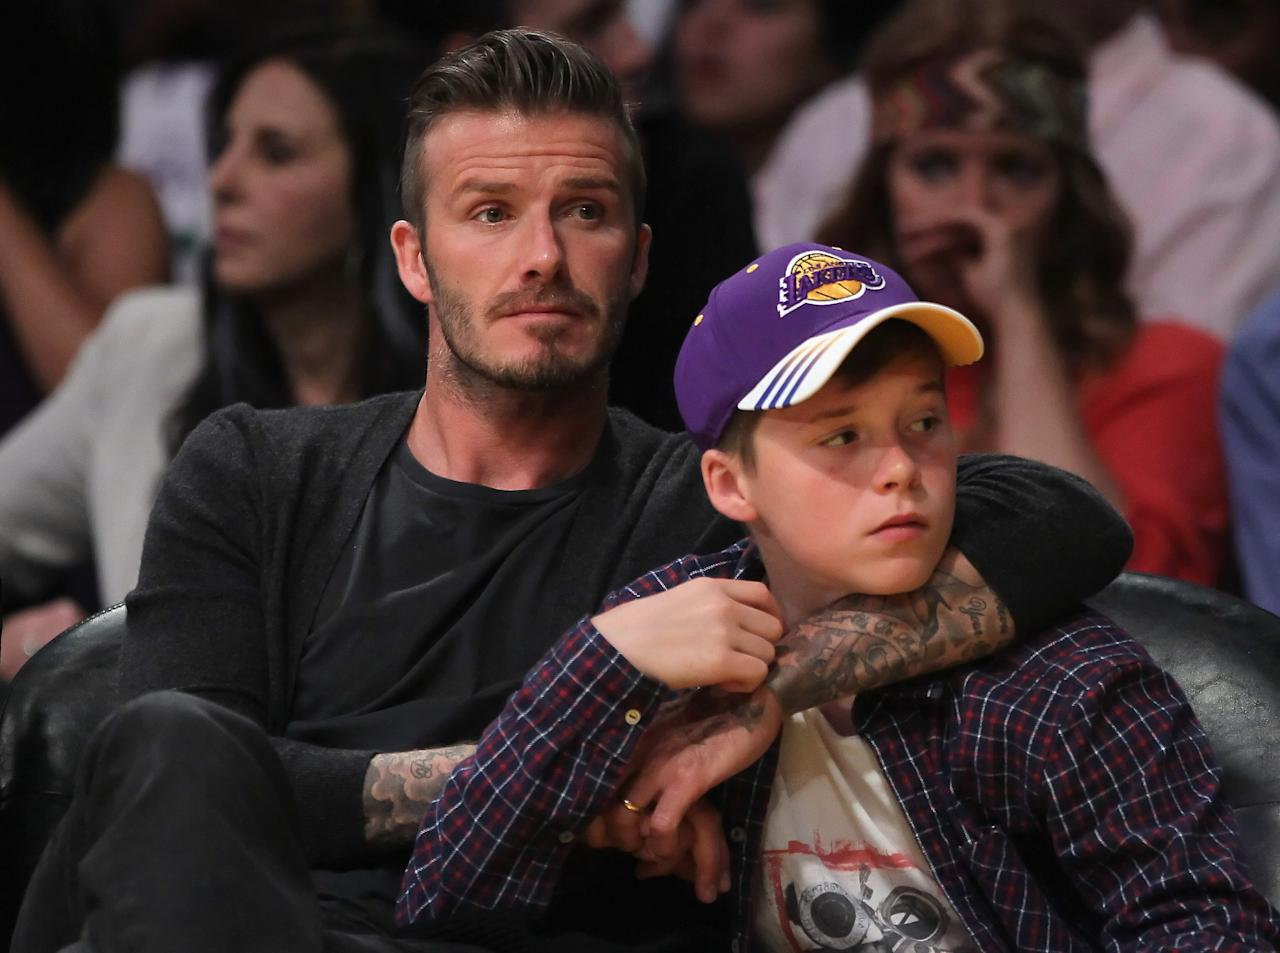 LOS ANGELES, CA - APRIL 29:  David Beckham and son Brooklyn take in Game One of the Western Conference Quarterfinals between the Los Angeles Lakers and the Denver Nuggets in the 2012 NBA Playoffs on April 29, 2012 at Staples Center in Los Angeles, California. The Lakers defeated the Nuggets 103-88. NOTE TO USER: User expressly acknowledges and agrees that, by downloading and or using this photograph, User is consenting to the terms and conditions of the Getty Images License Agreement.  (Photo by Jeff Gross/Getty Images)